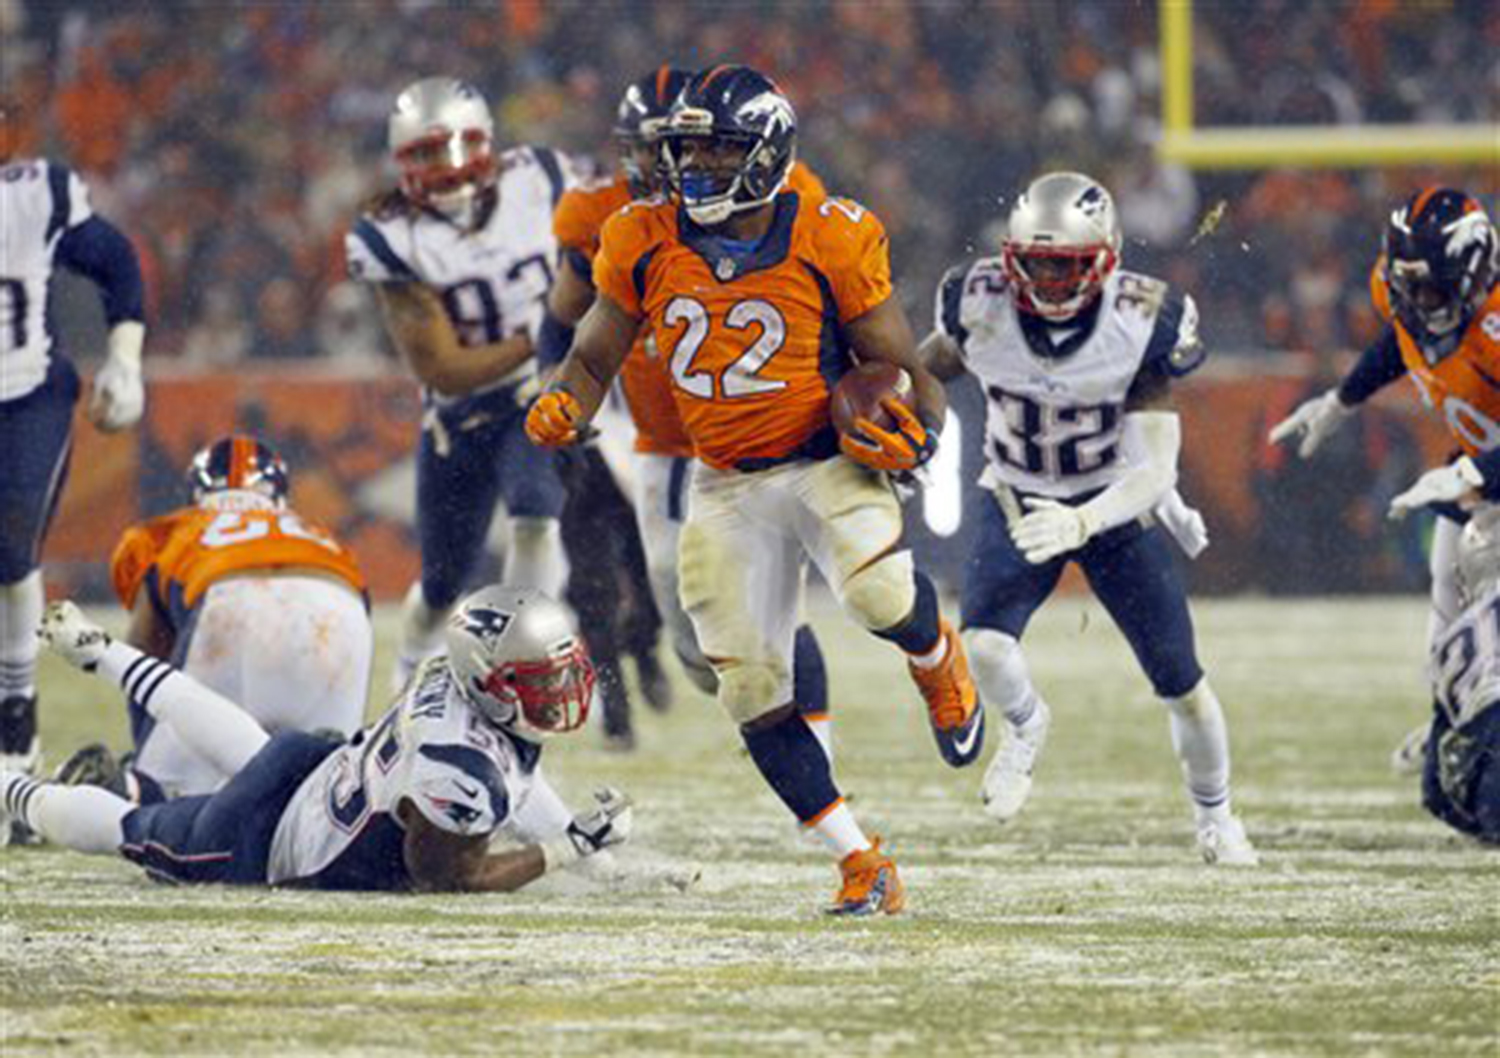 Maine Fall Wallpaper Patriots Lose To Broncos In Overtime 30 24 Portland